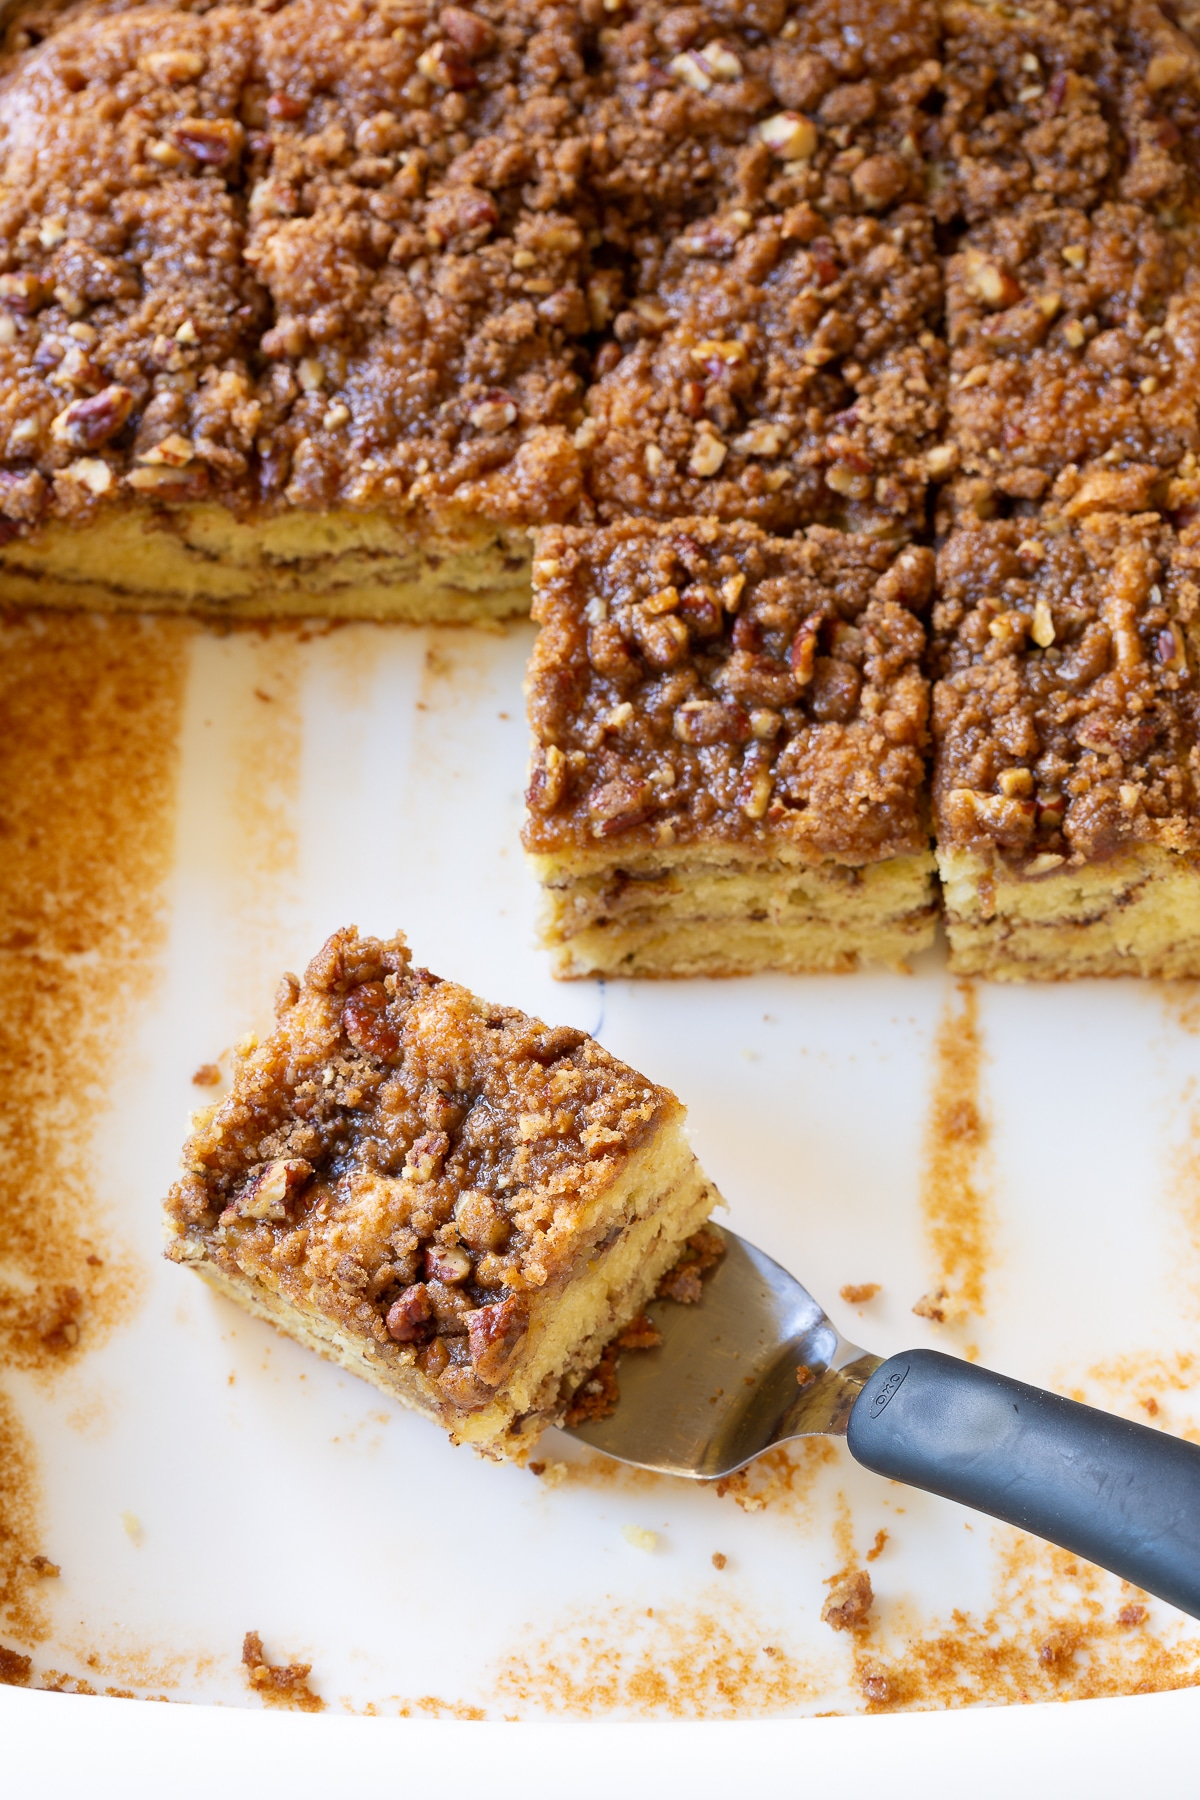 How To Make Coffee Cake (Recipe) #ASpicyPerspective #coffee #cake #snack #breakfast #holidays